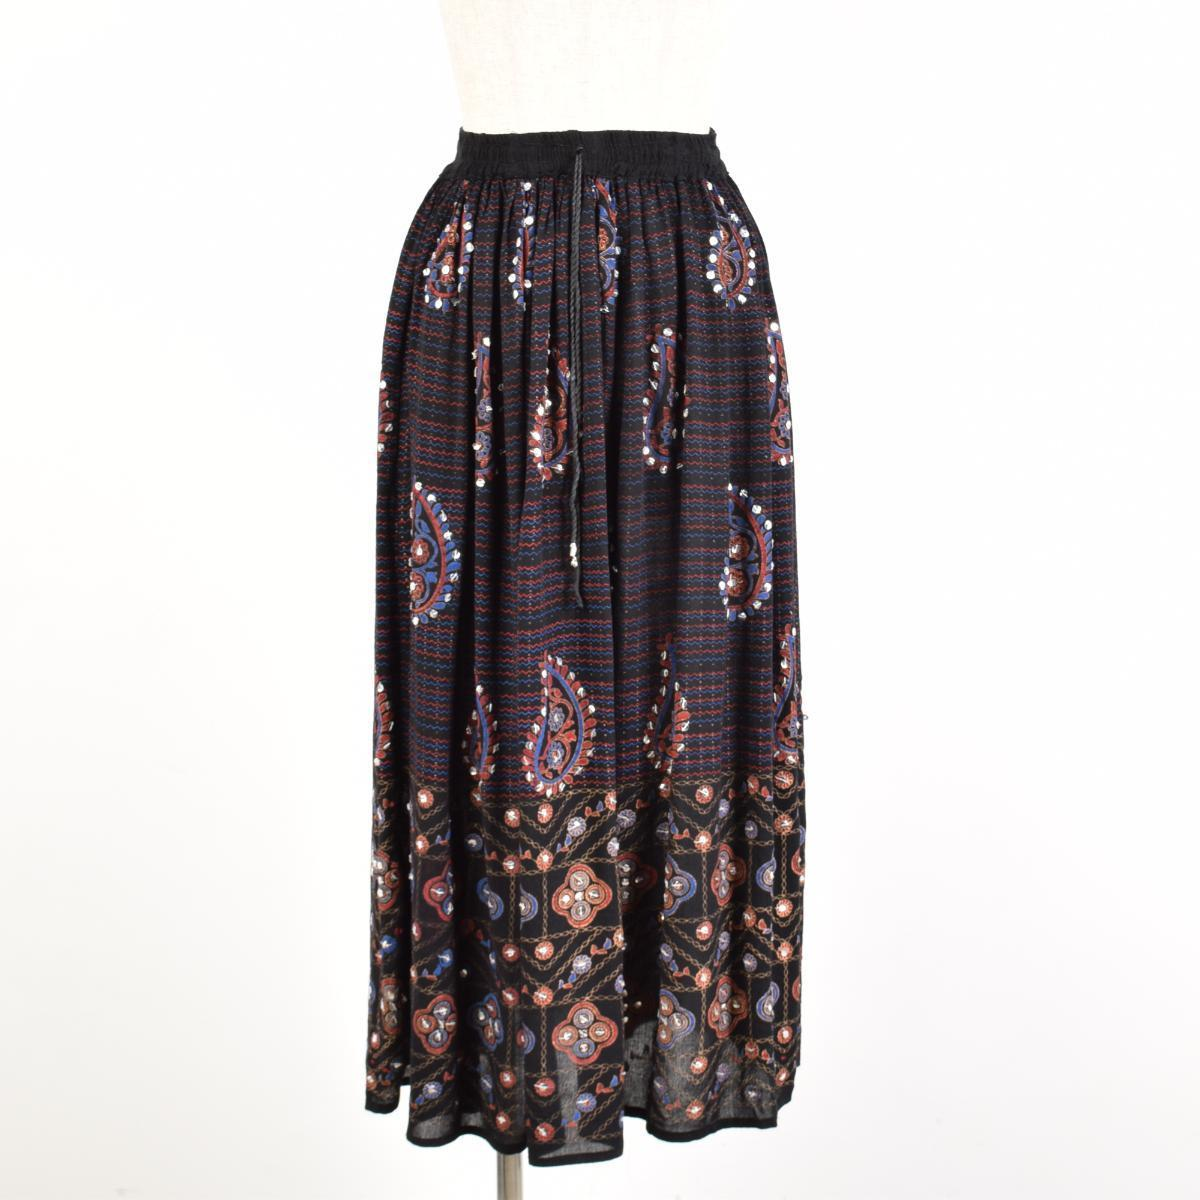 Long gathered skirt Lady's S~L BADAL /wab1995 with ethnic paisley spangles